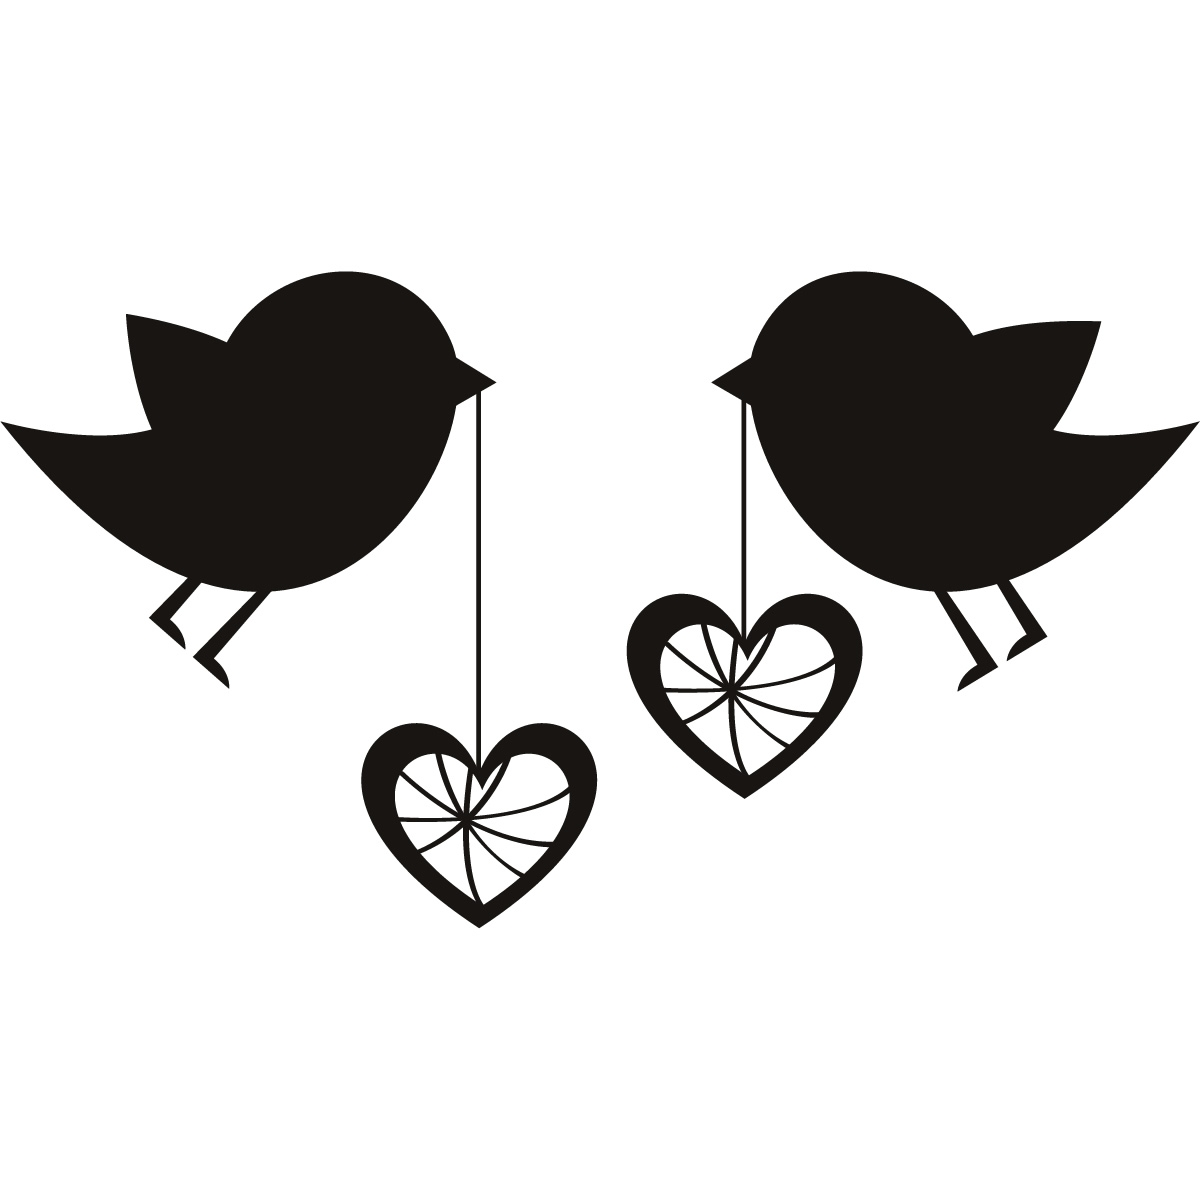 love birds drawing images at getdrawings com free for personal use rh getdrawings com love bird clipart free love bird clipart black and white